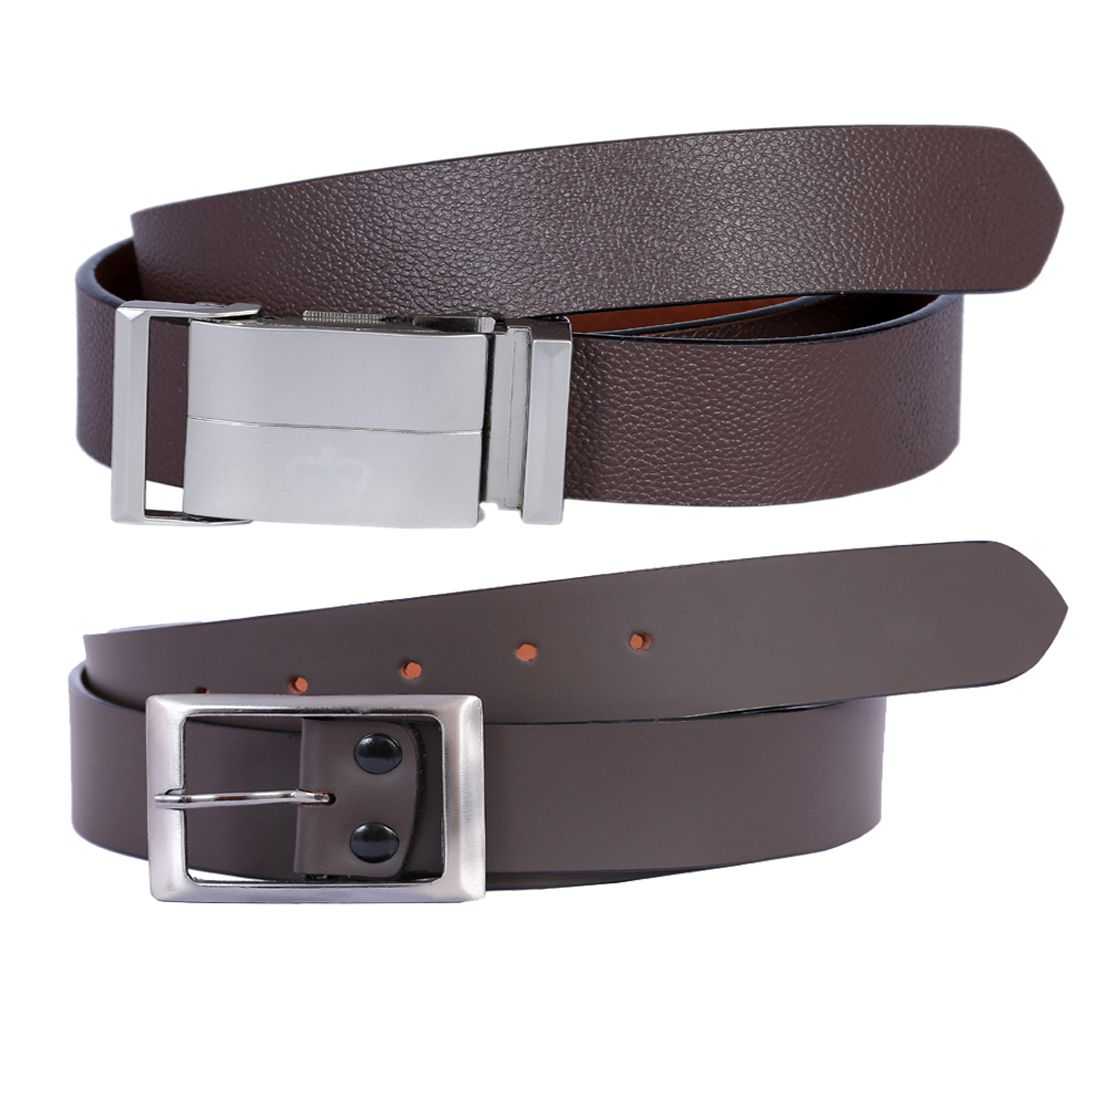 Kritika's World Brown Leather Casual Belts - Pack of 2